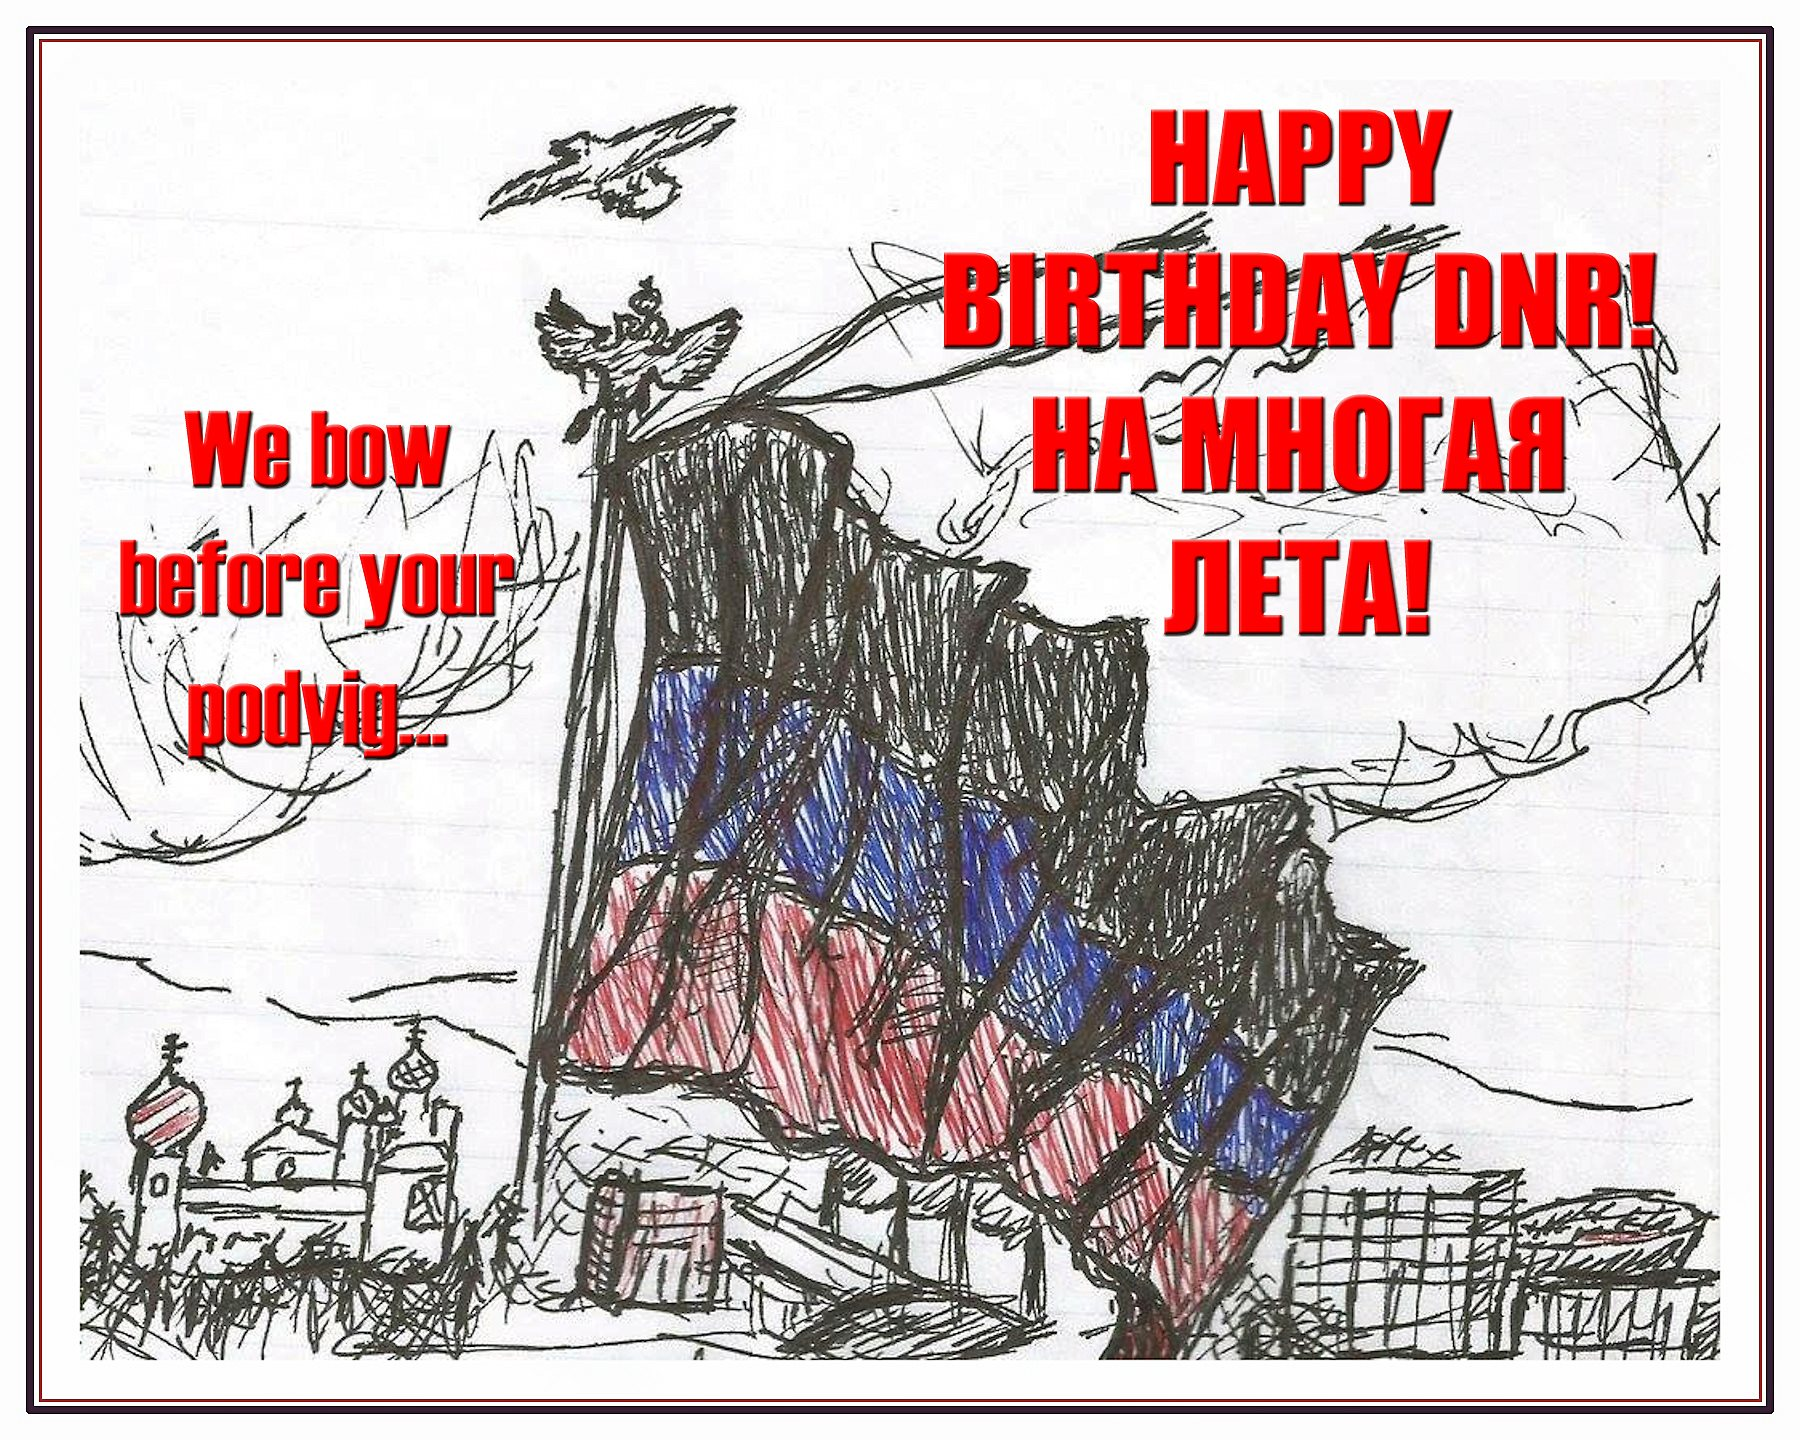 00 Happy Birthday DNR! 07.04.15